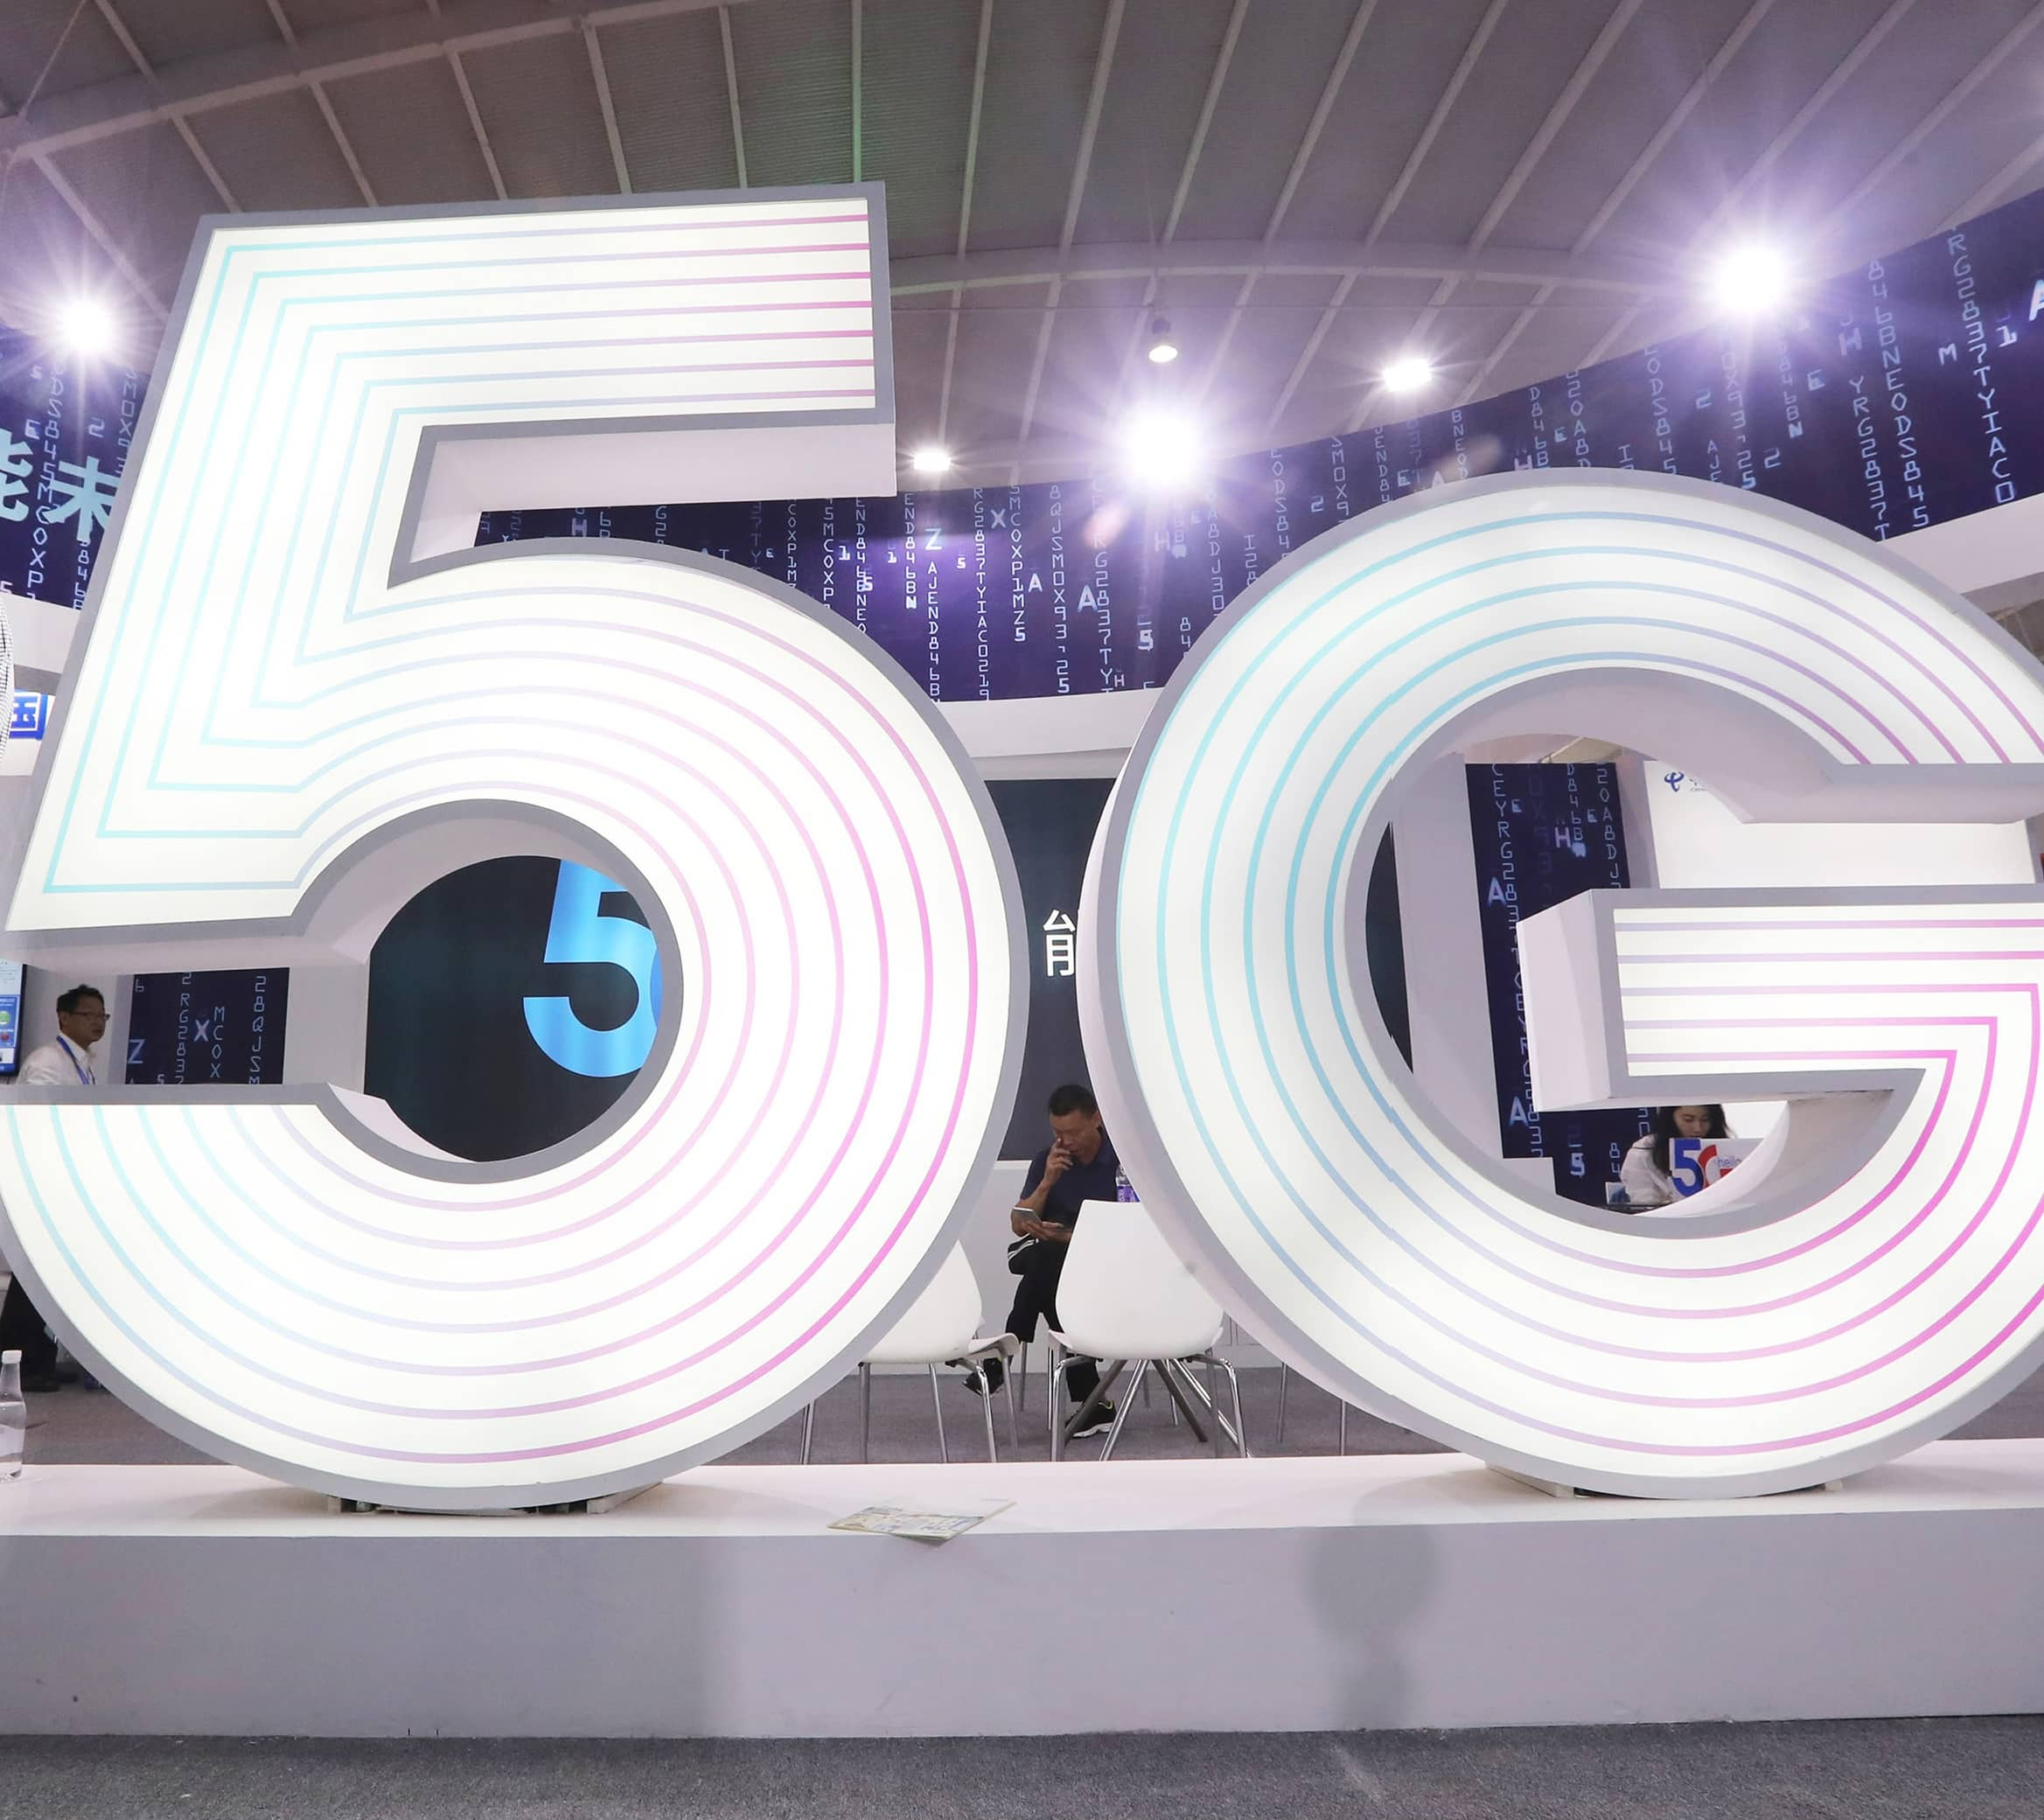 Why You Don't Need A 5G Phone Just Yet